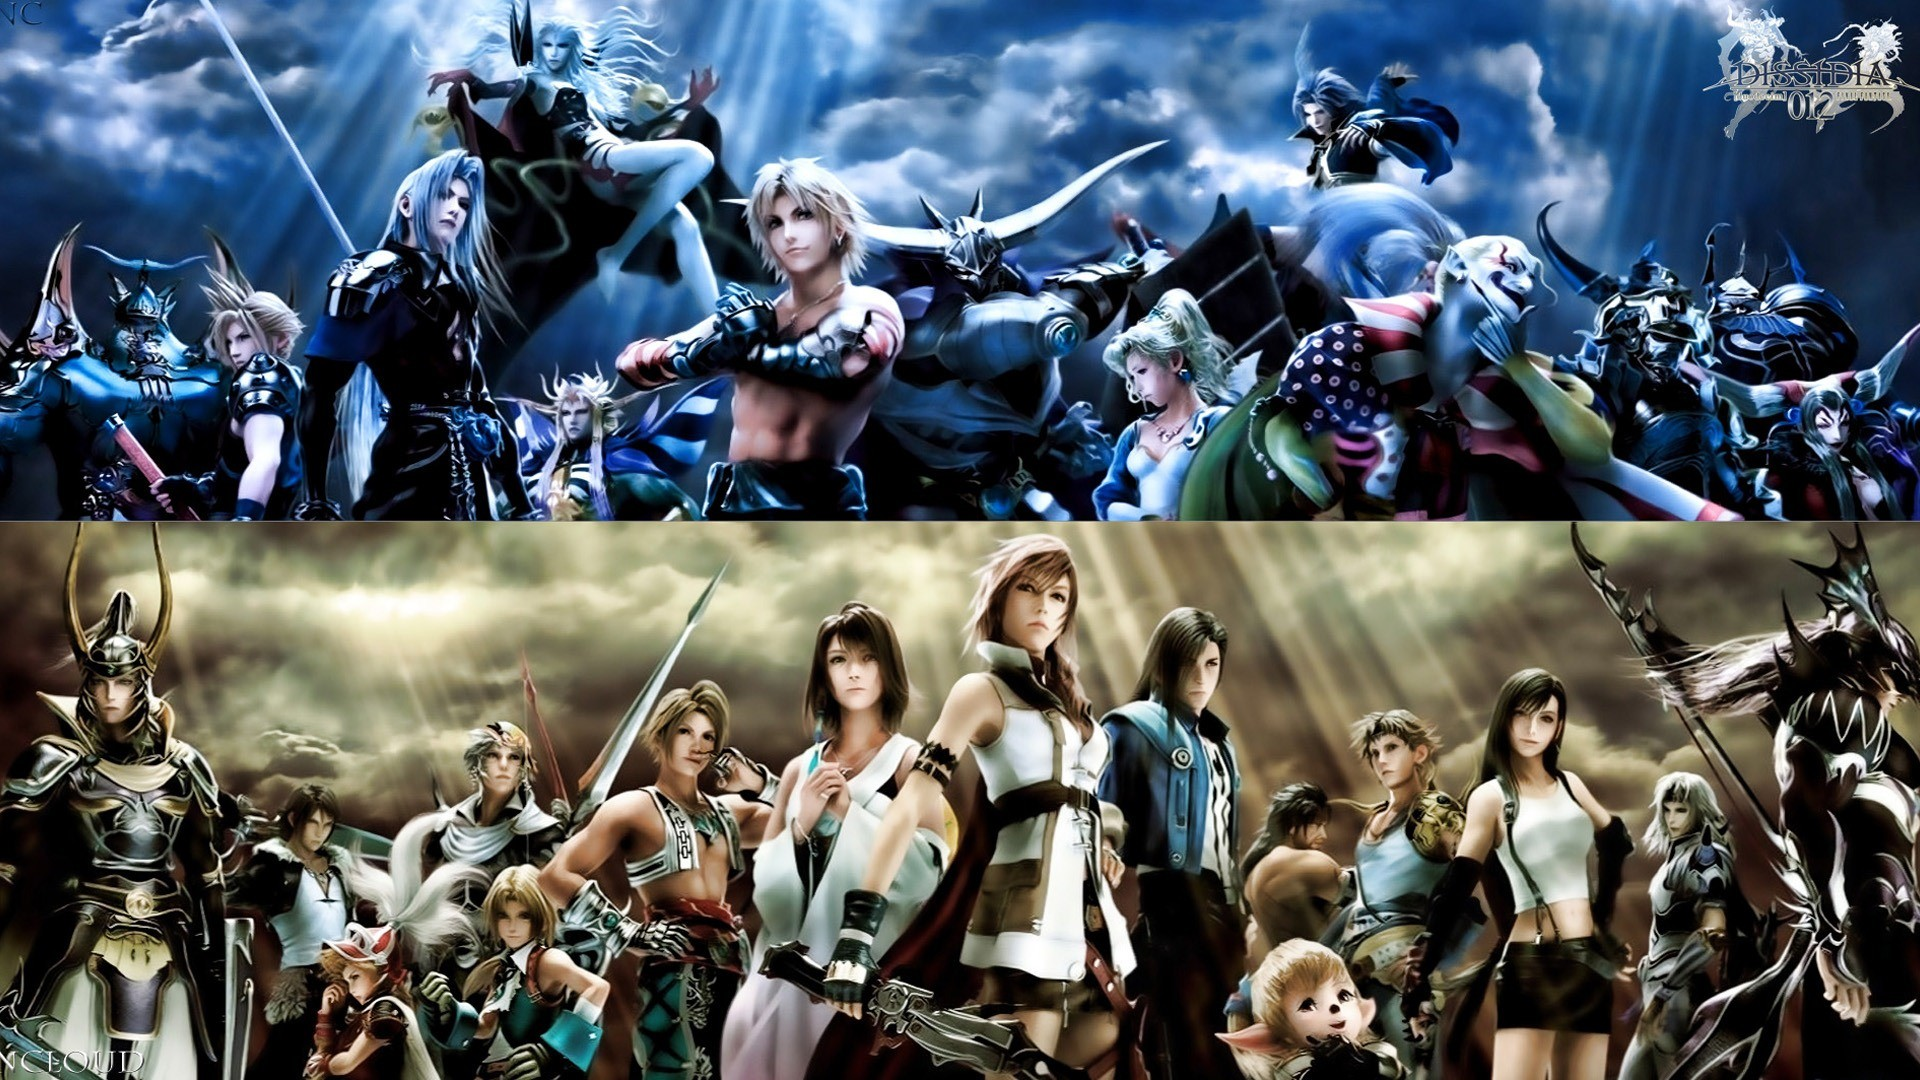 Top Hottest Final Fantasy Girls Can You Guess Whos Number | Wallpapers 4k |  Pinterest | Final fantasy, Final fantasy girls and Fantasy girl